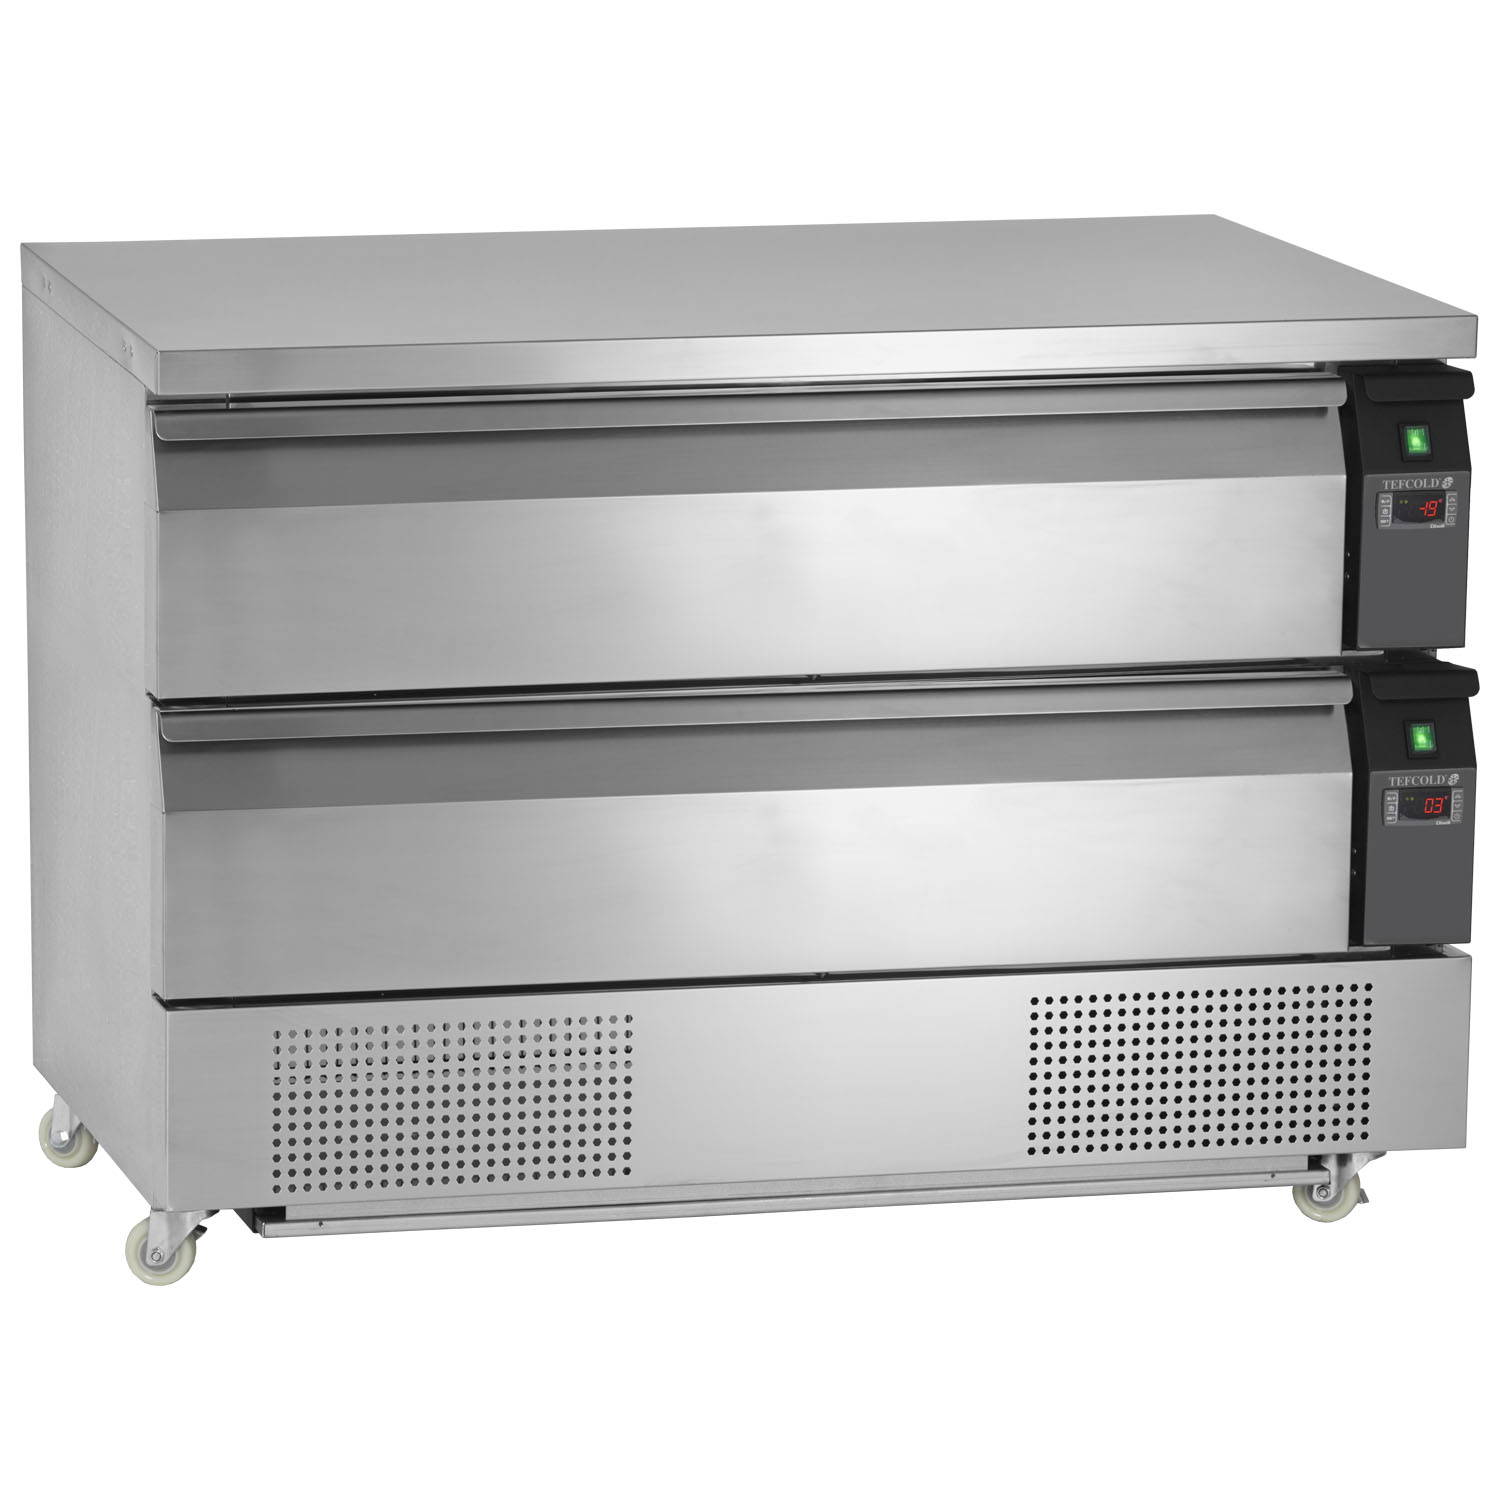 Tefcold Uni-Drawer UD2-3 Dual Temperature Gastronorm Stainless Steel Counter